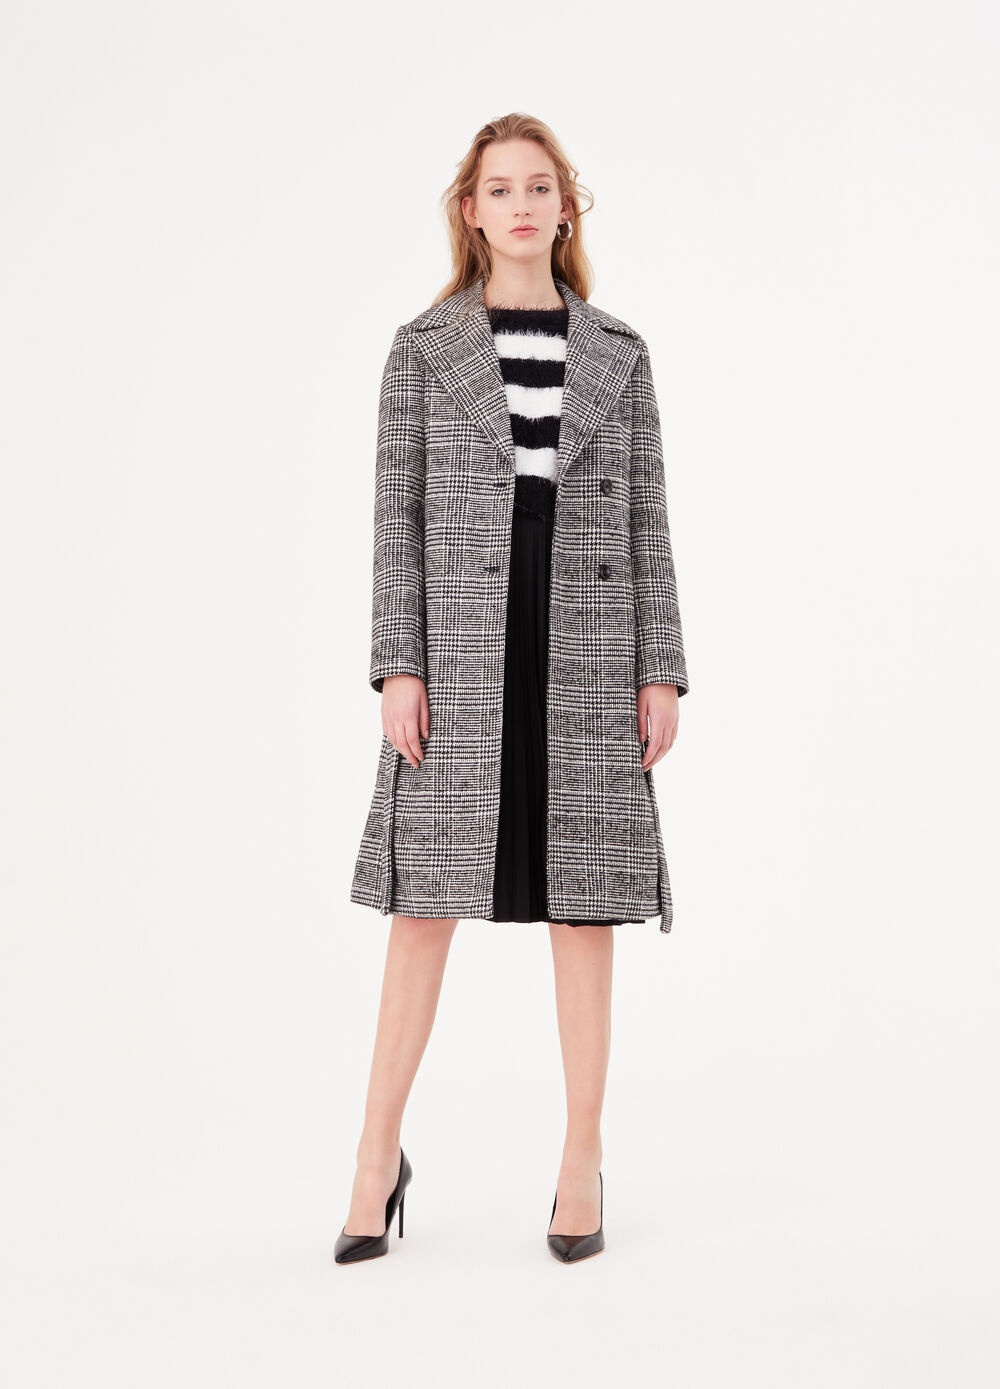 Prince of Wales viscose blend coat